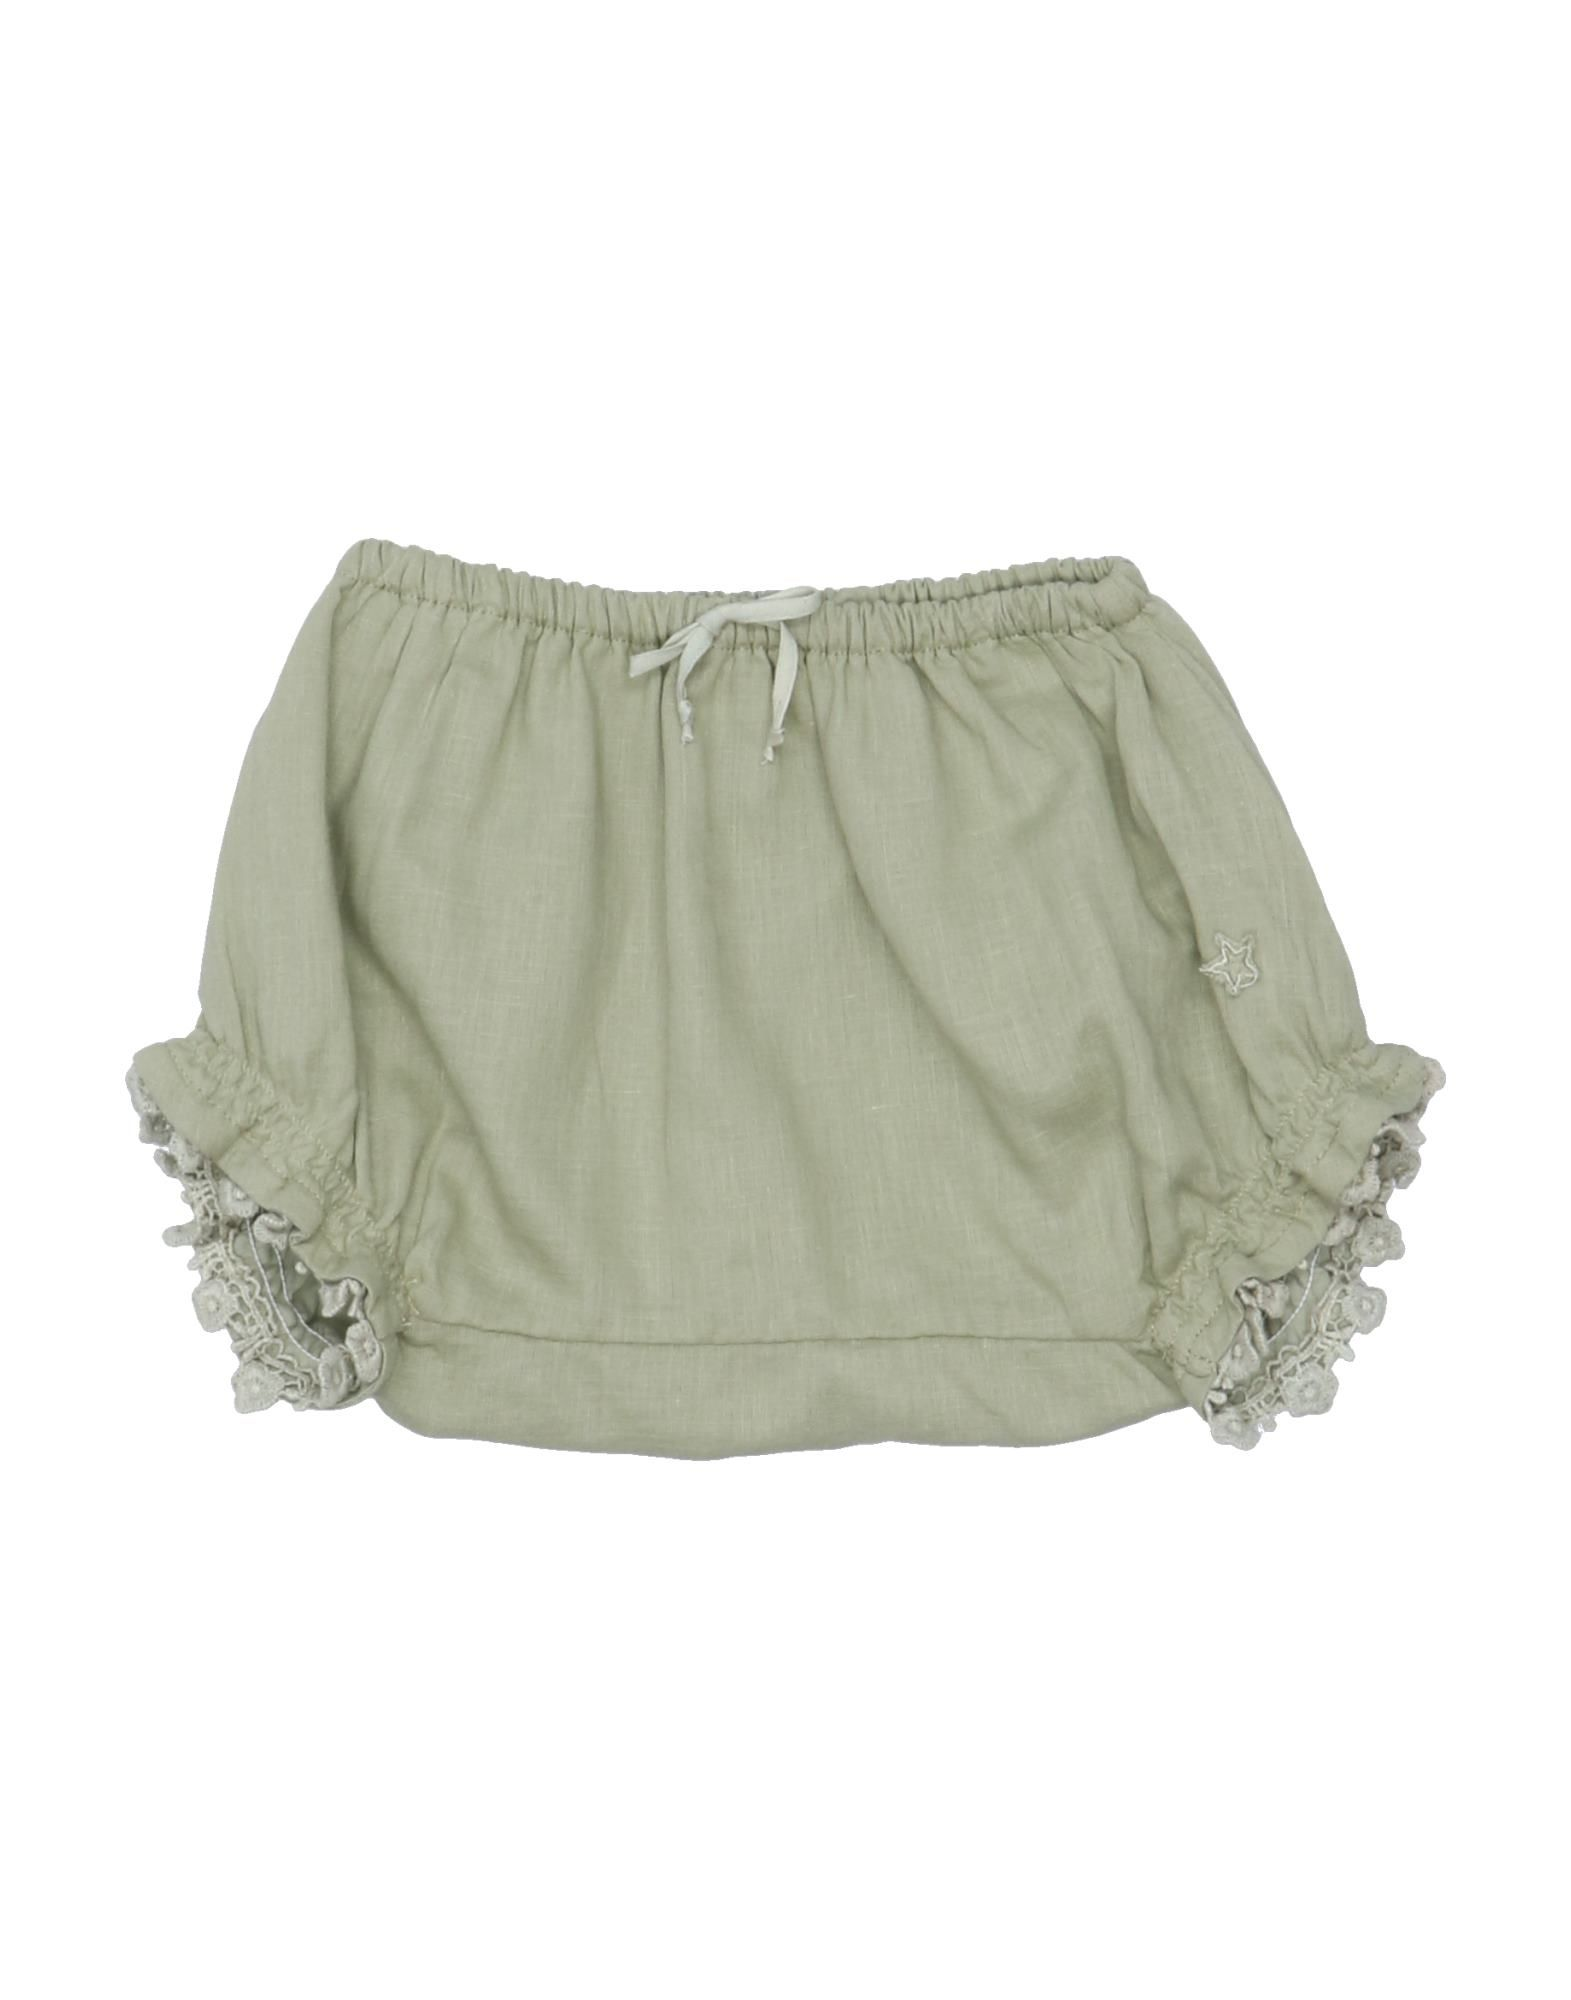 Tocoto Vintage Kids' Shorts In Green